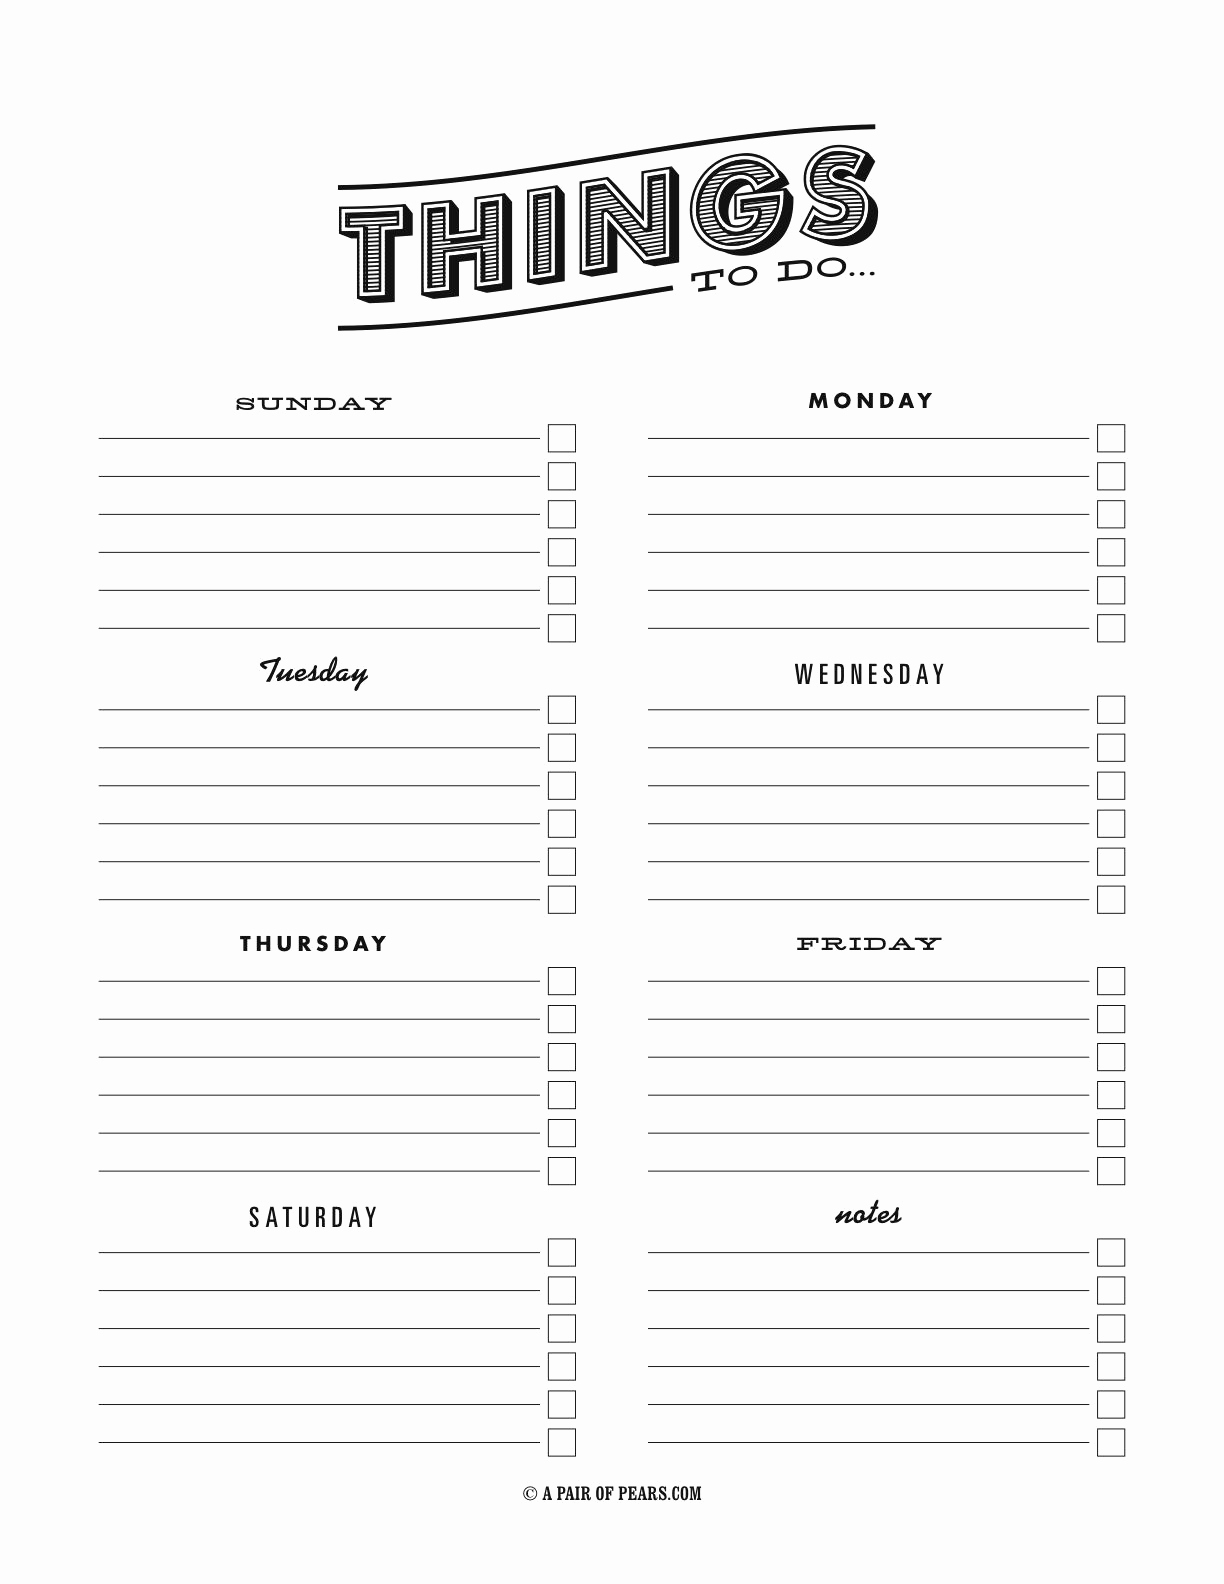 To Do List Pdf Inspirational Things to Do Template Pdf Fancy to Do List